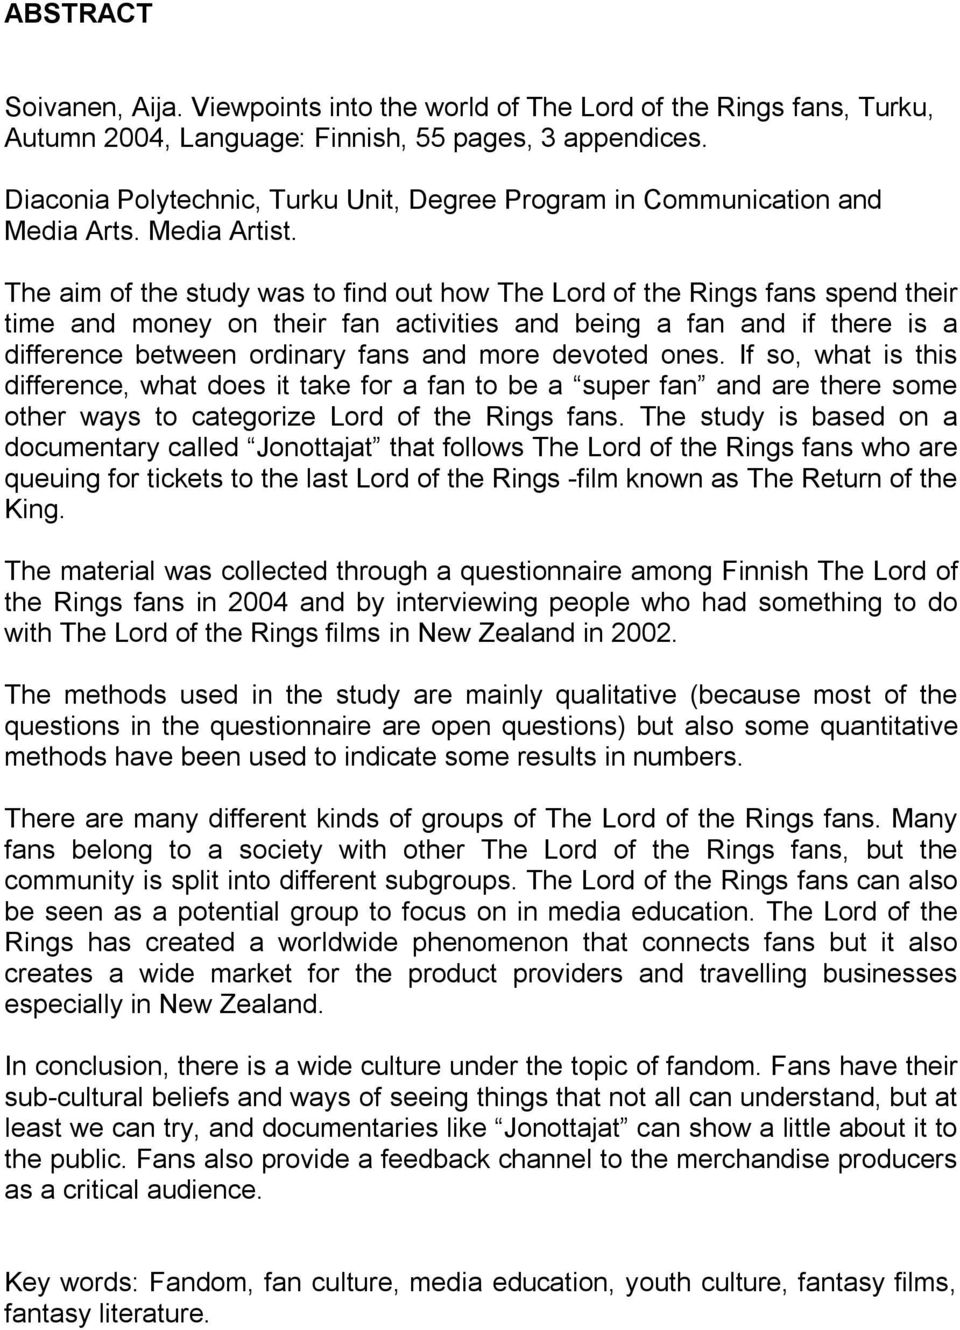 The aim of the study was to find out how The Lord of the Rings fans spend their time and money on their fan activities and being a fan and if there is a difference between ordinary fans and more